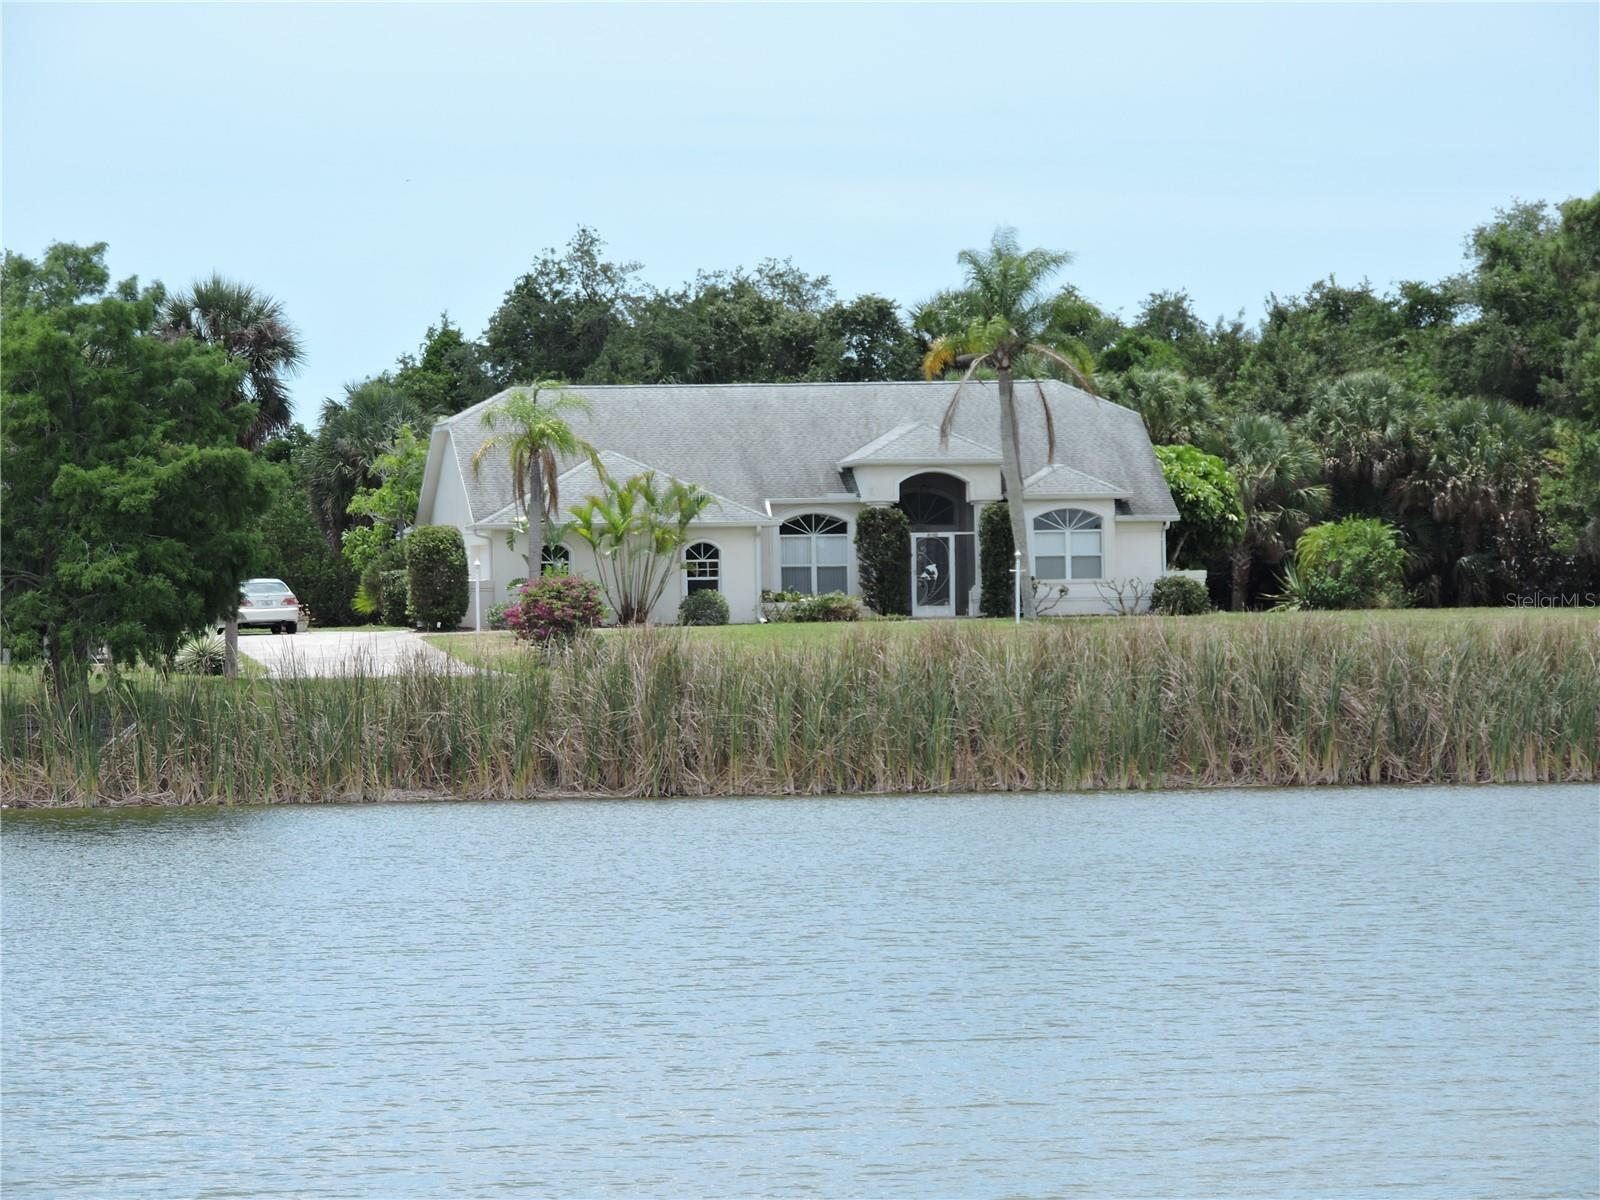 Primary photo of recently sold MLS# N6115241